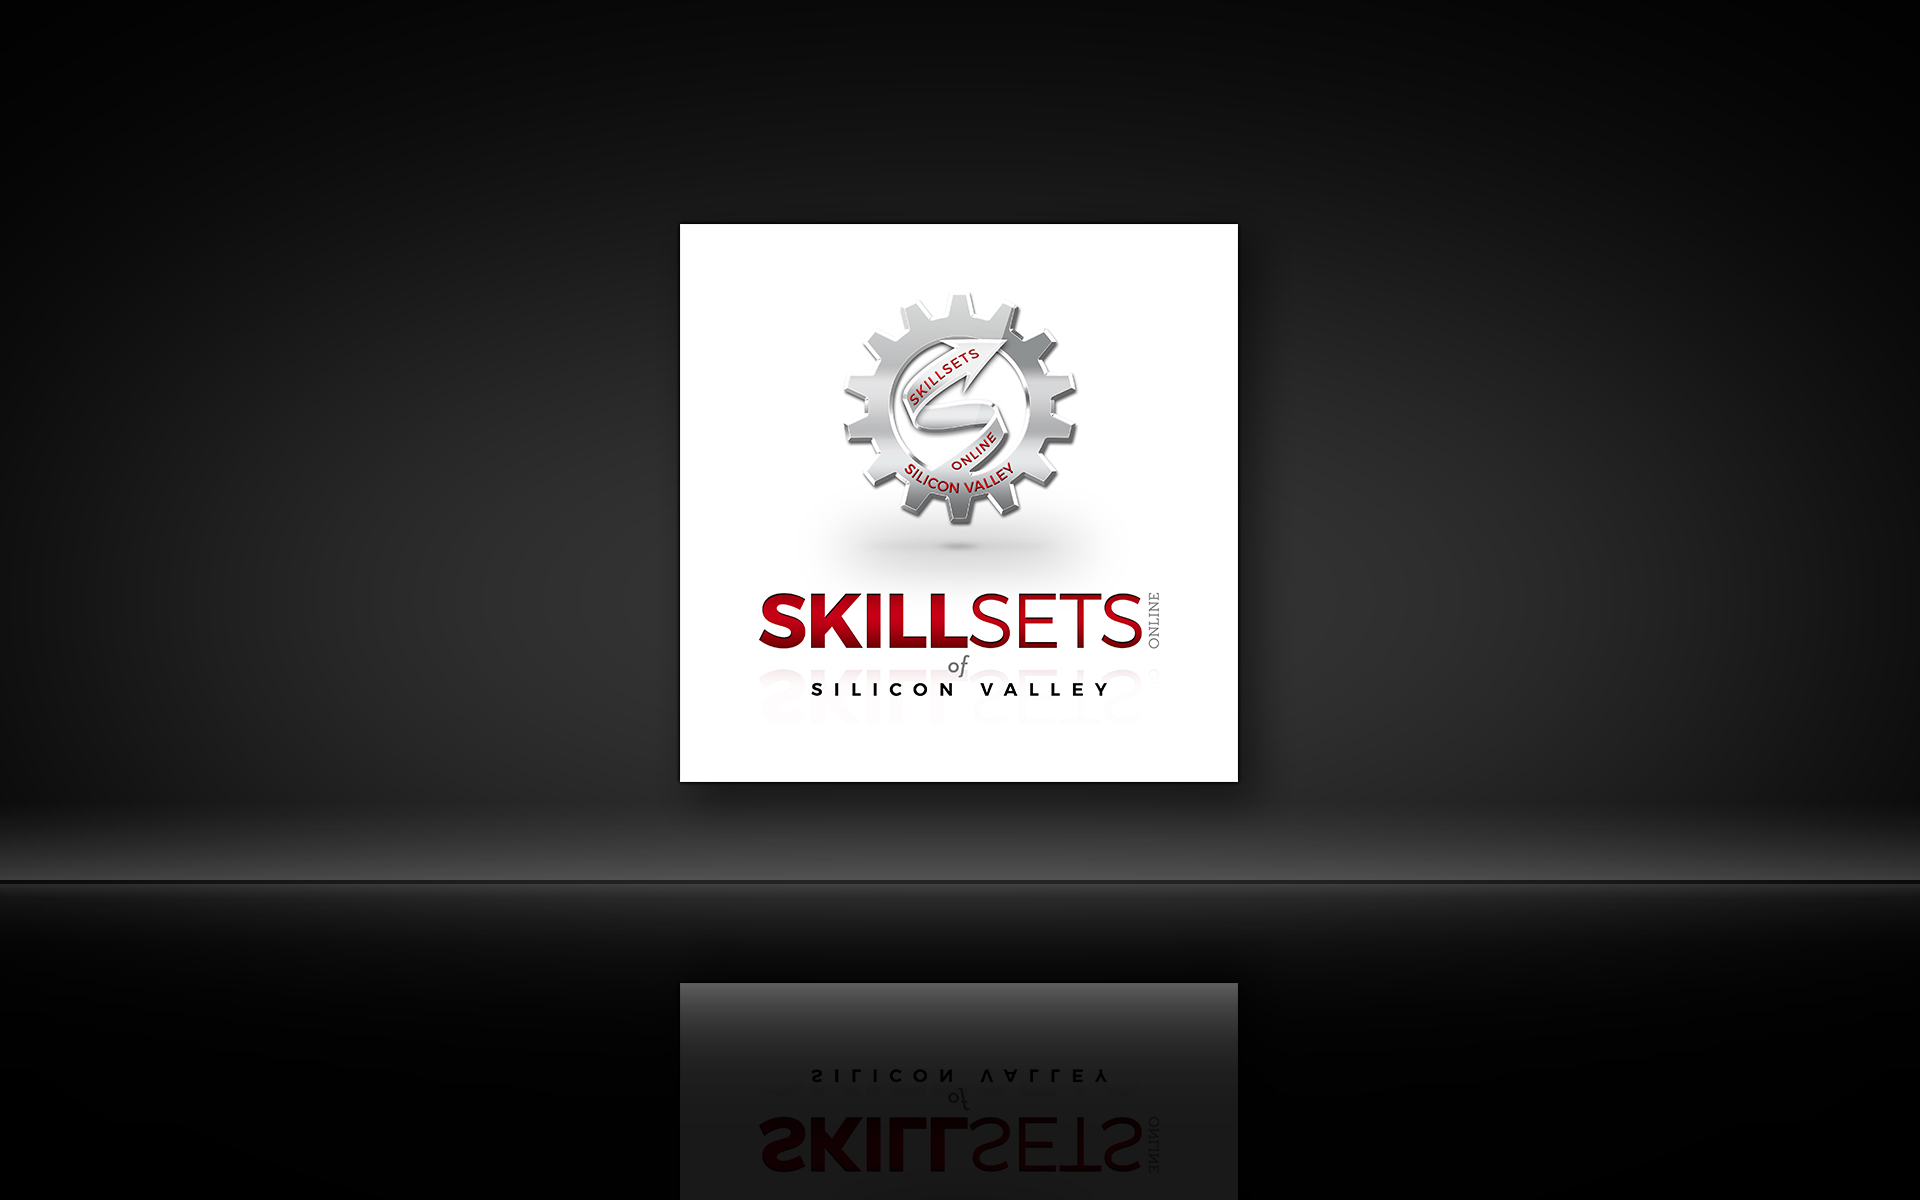 SkillSets Online of Silicon Valley [v2] logo by Graham Hnedak Brand G Creative REV 23 JULY 2016.jpg